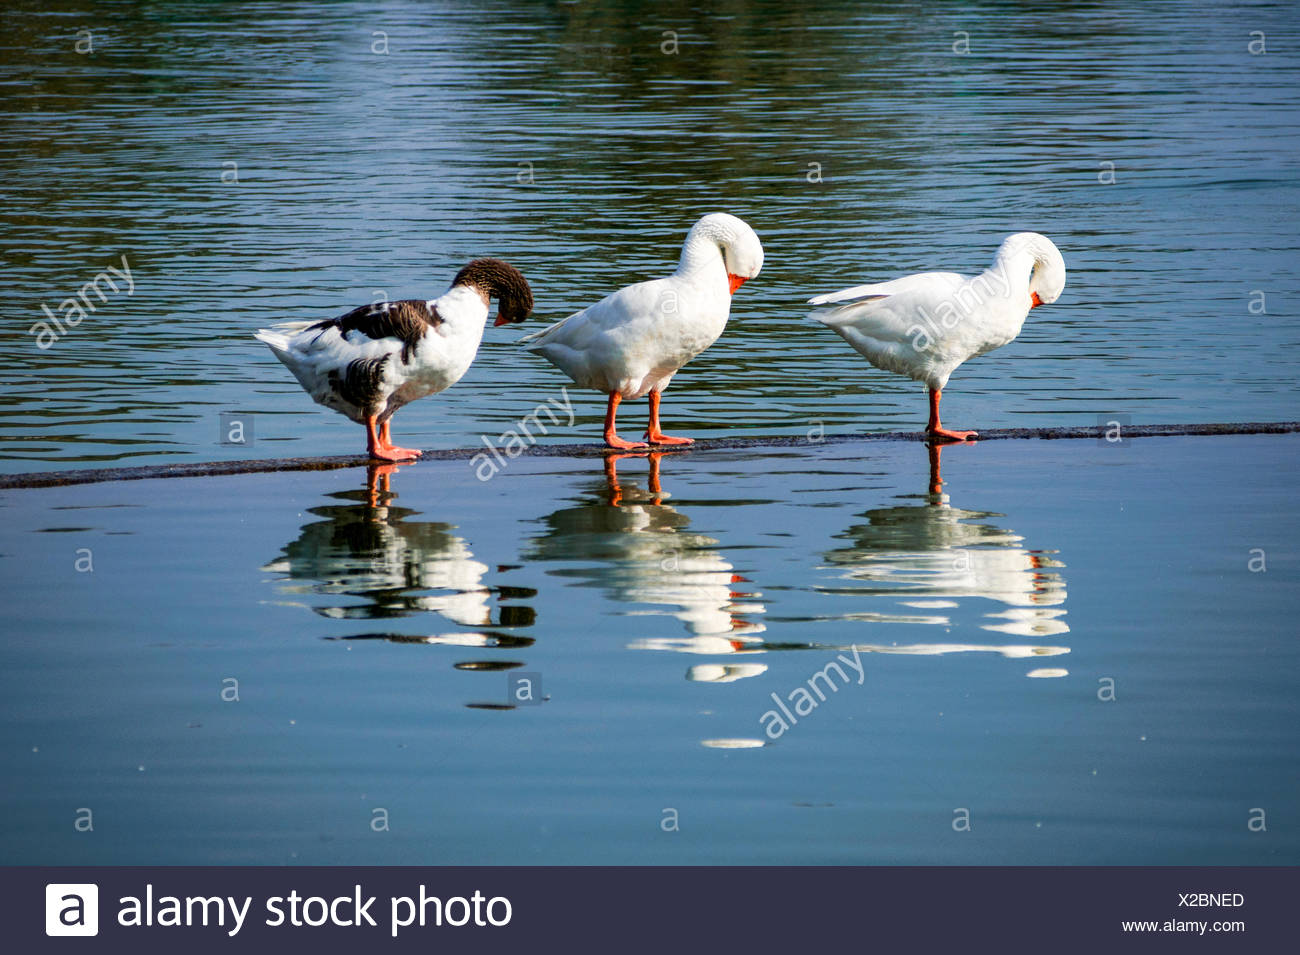 Three ducks stand in water with bowed heads - Stock Image